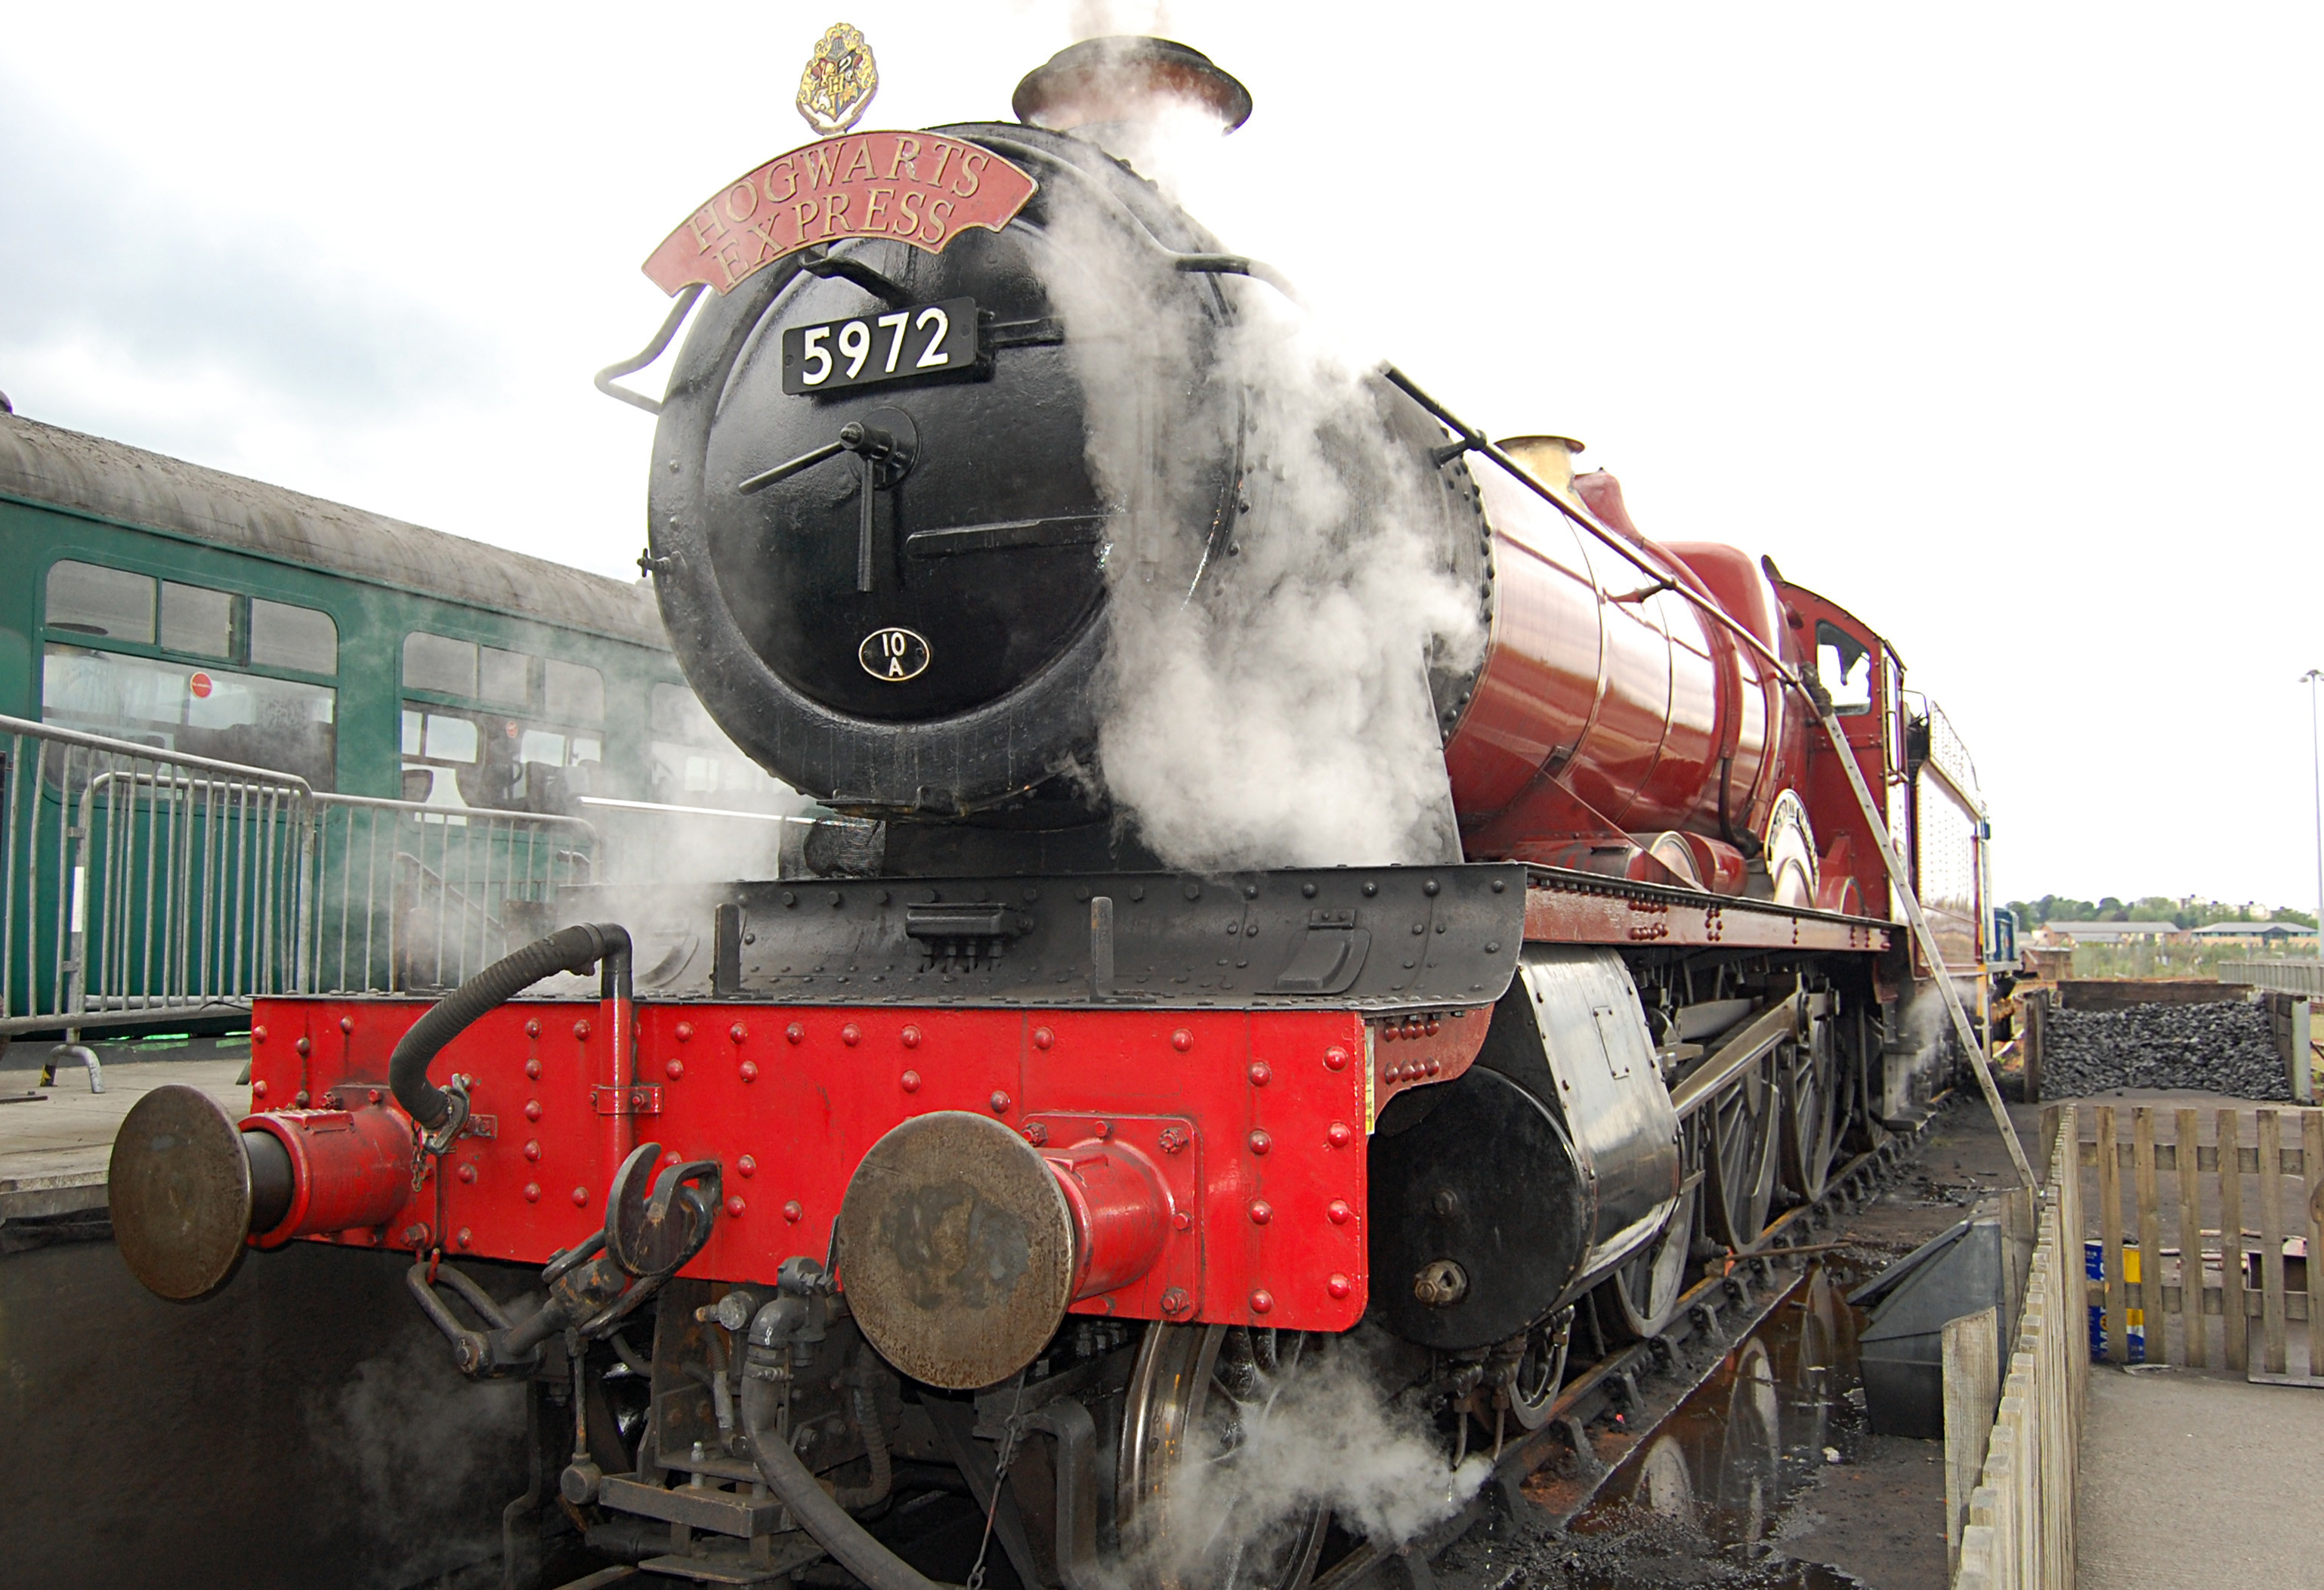 Res: 3076x2104, The Many Lives of the Hogwarts Express (Transport from the World of Harry  Potter) – The Beauty of Transport